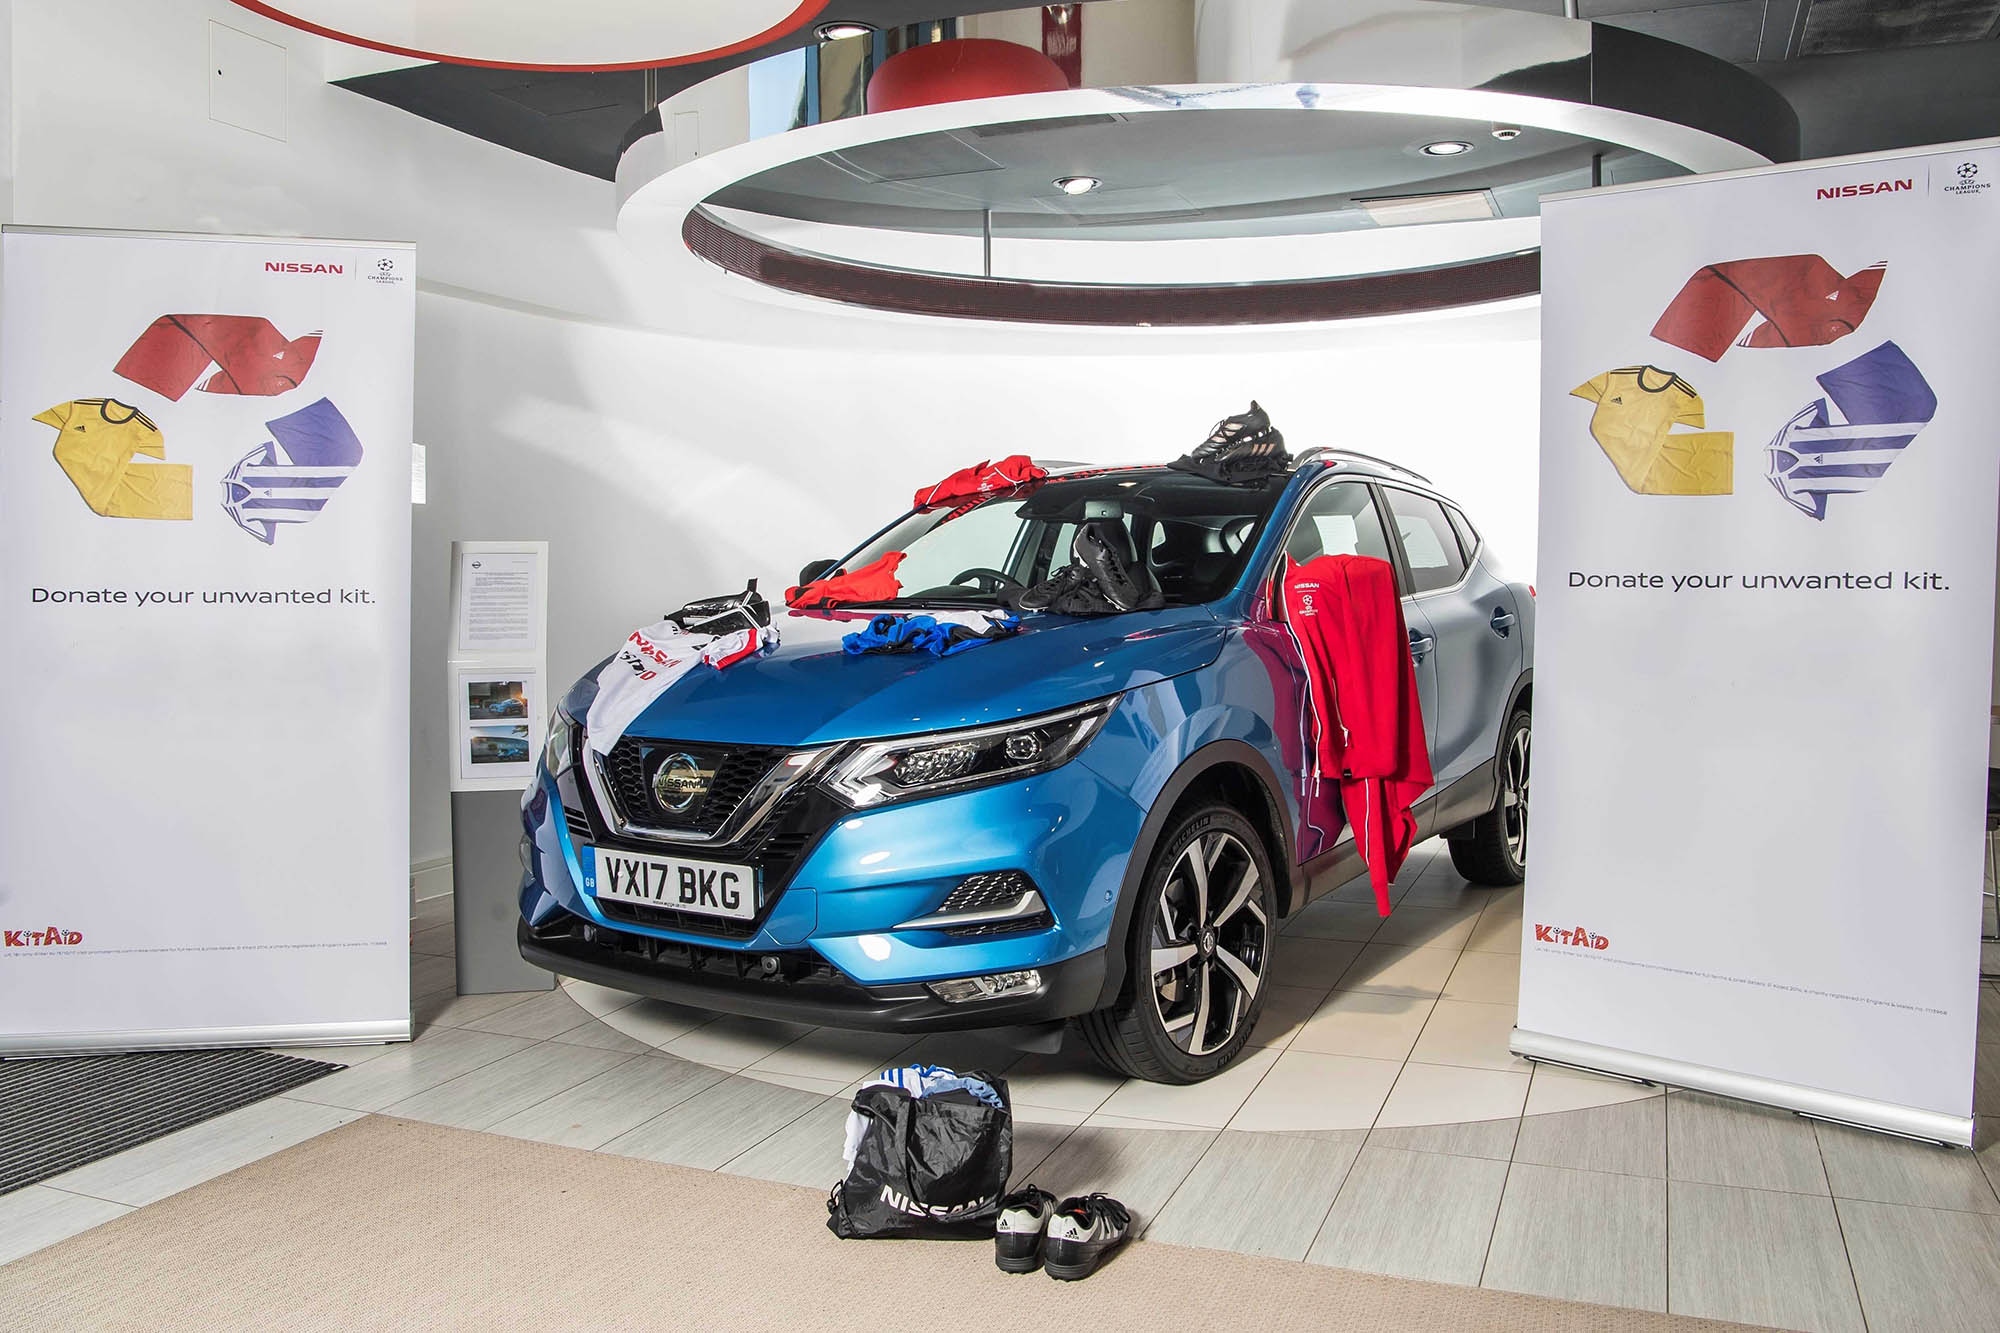 Nissan's Drive To Boost Football Charity KitAid